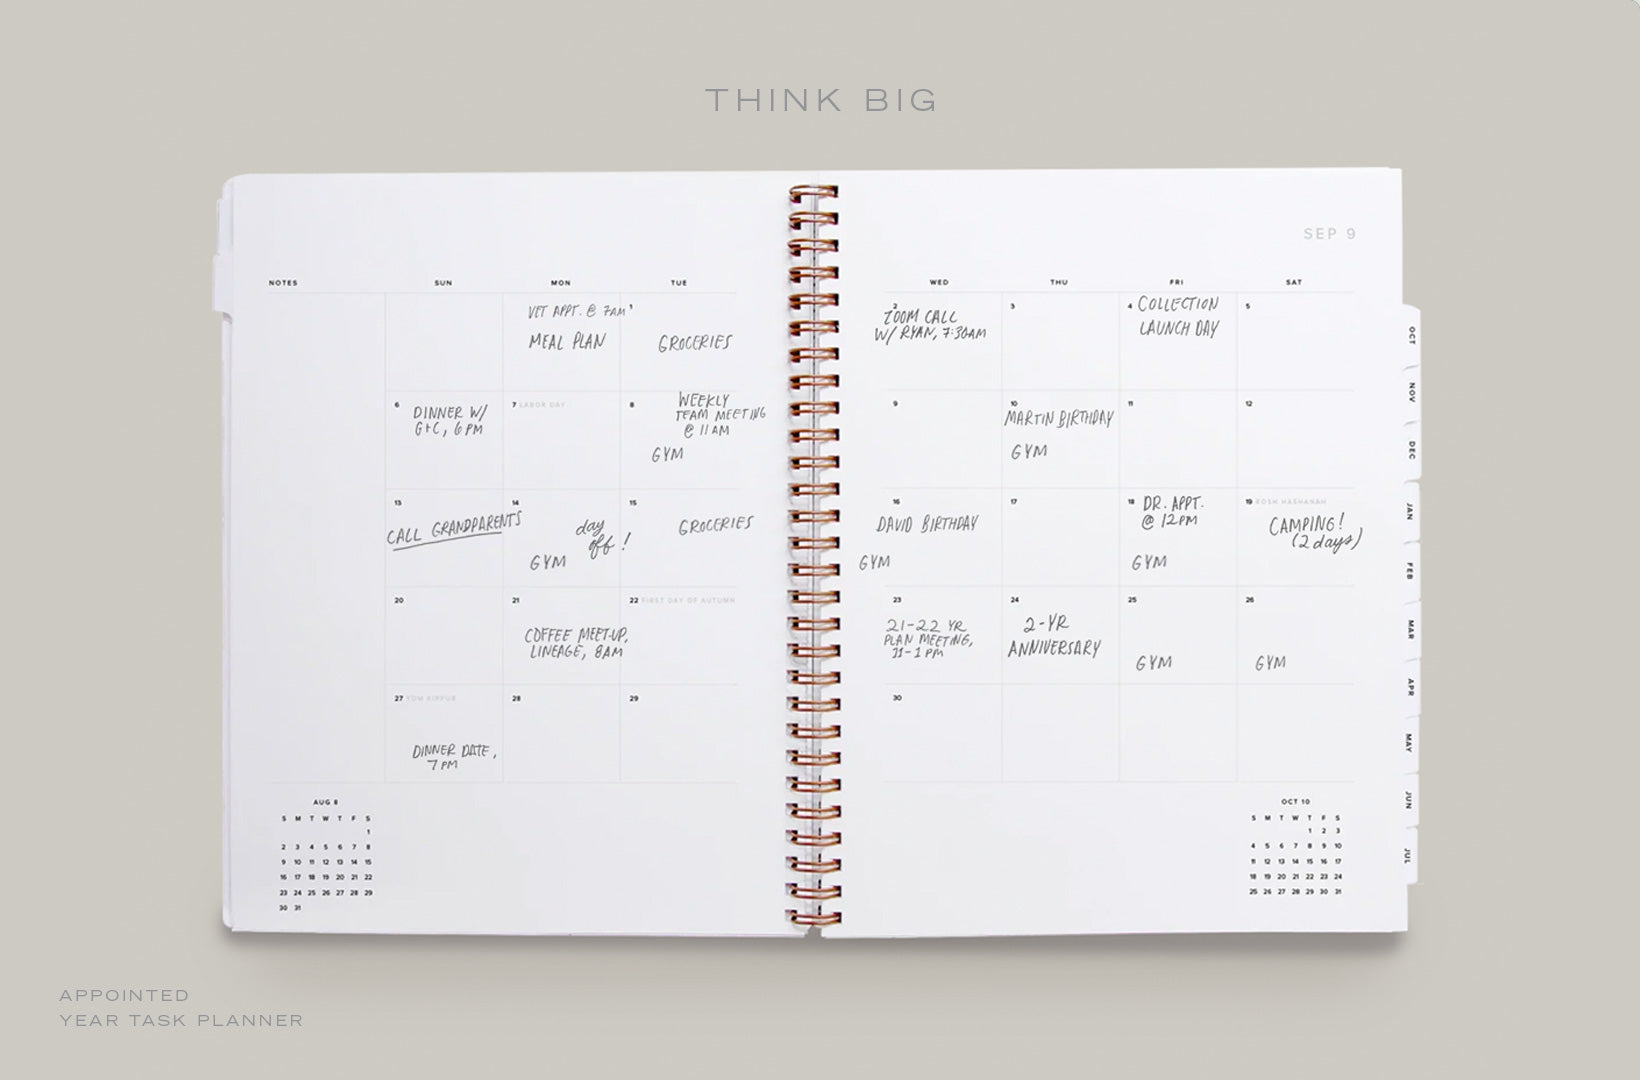 A Year Task Planner lays open to the month spread with appointments and events filled in